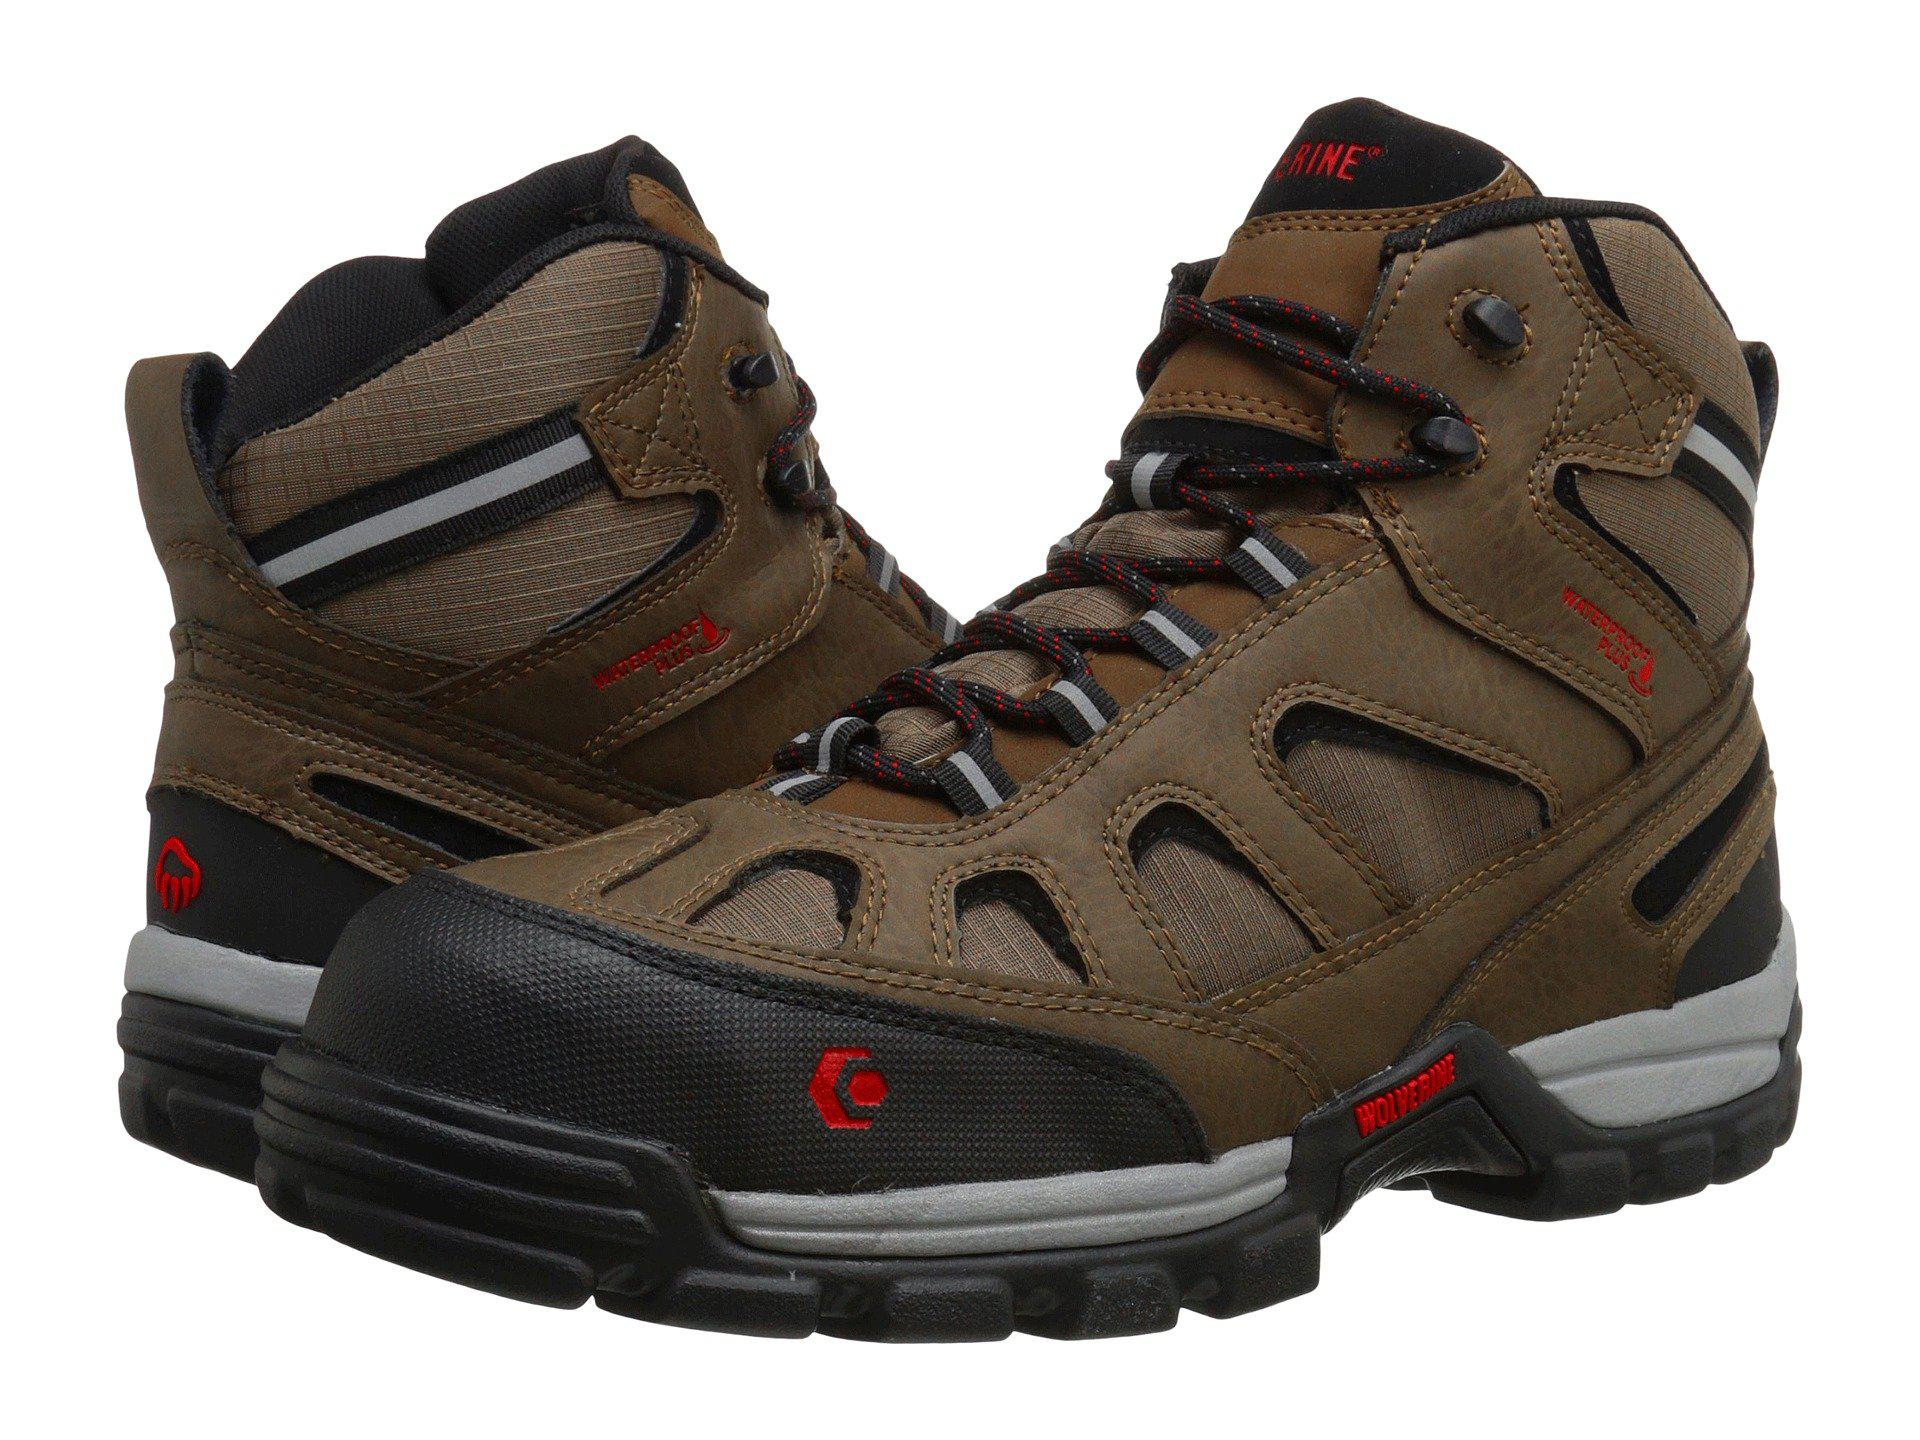 7d8e866715b Lyst - Wolverine Tarmac Fx Mid Composite Toe Boot in Brown for Men